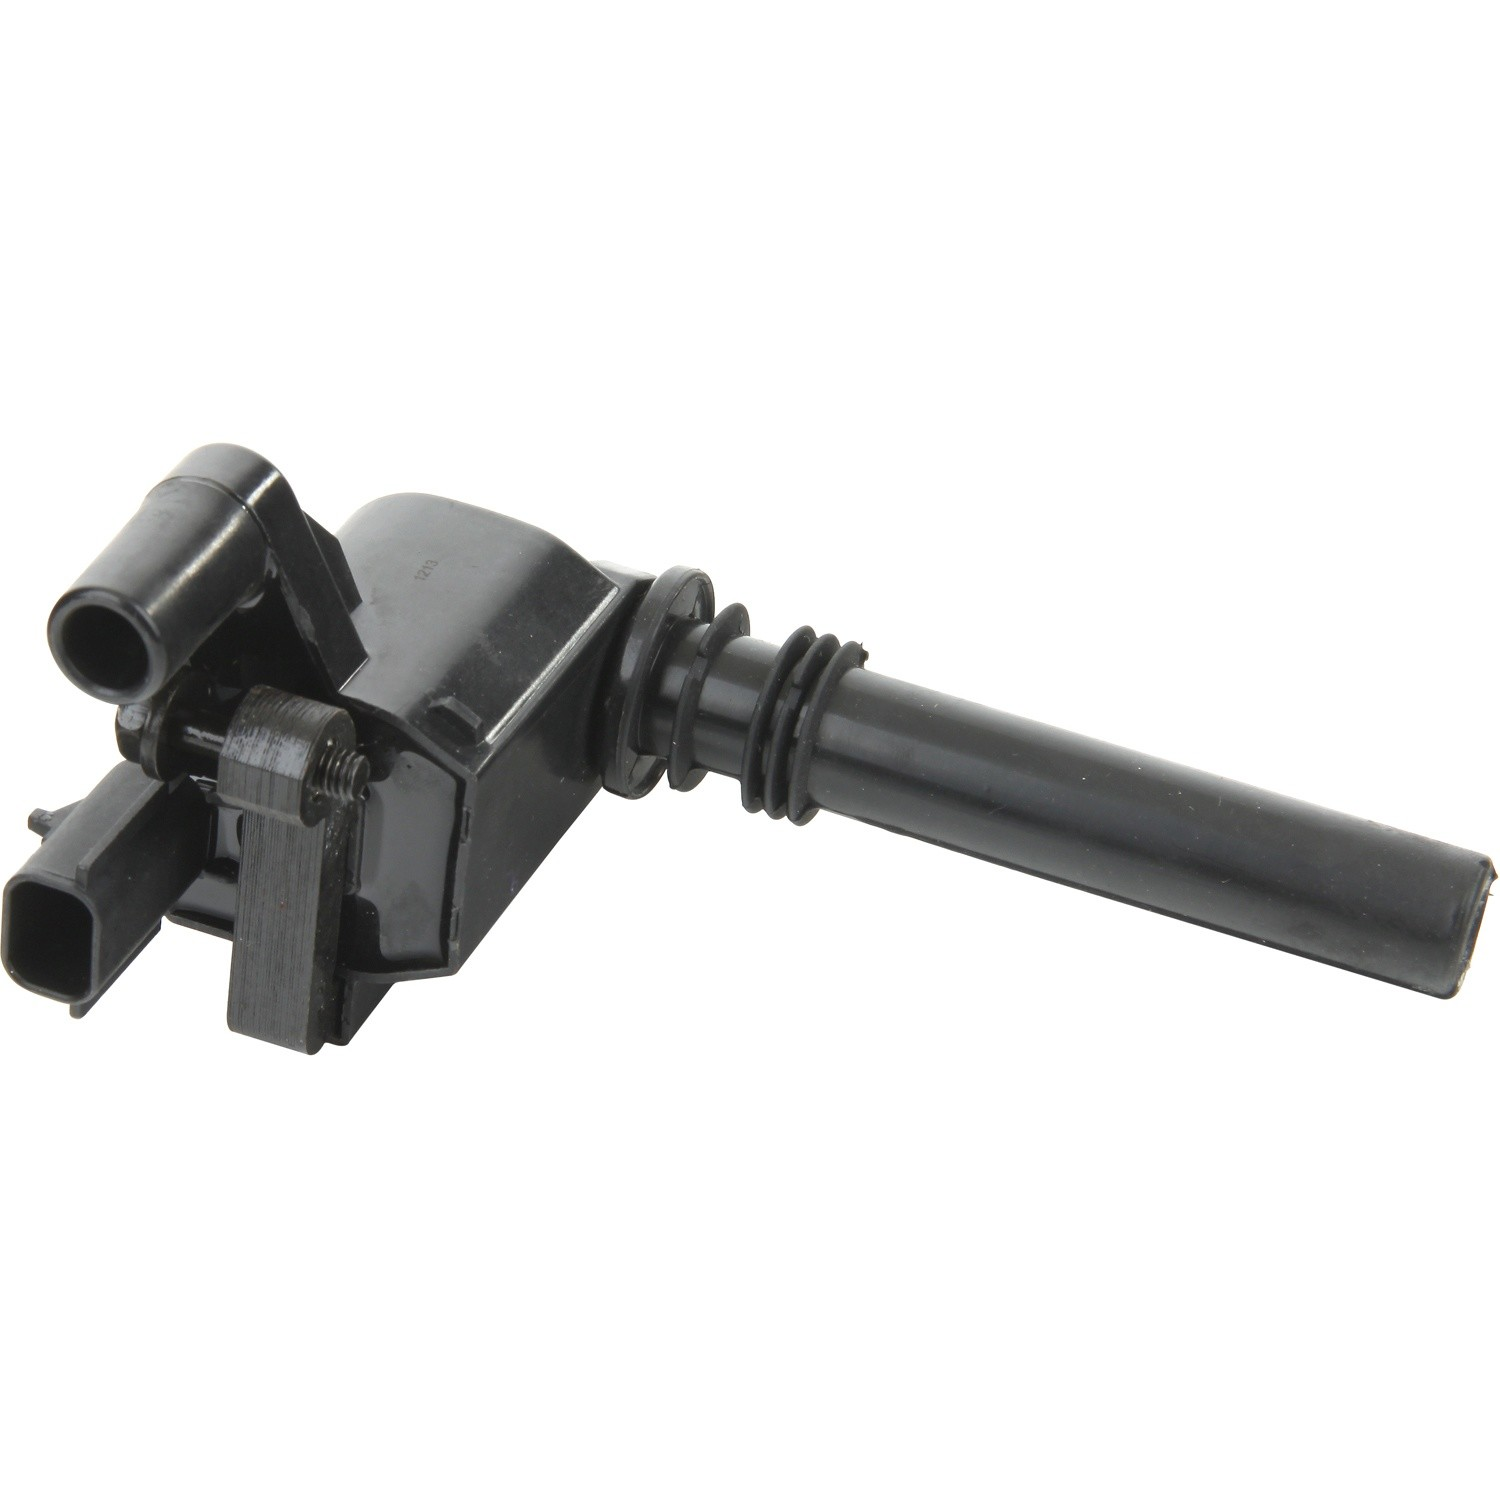 Ignition Coil Order: Ignition Coil APW, Inc. CLS1284 Fits 03-04 Dodge Ram 1500